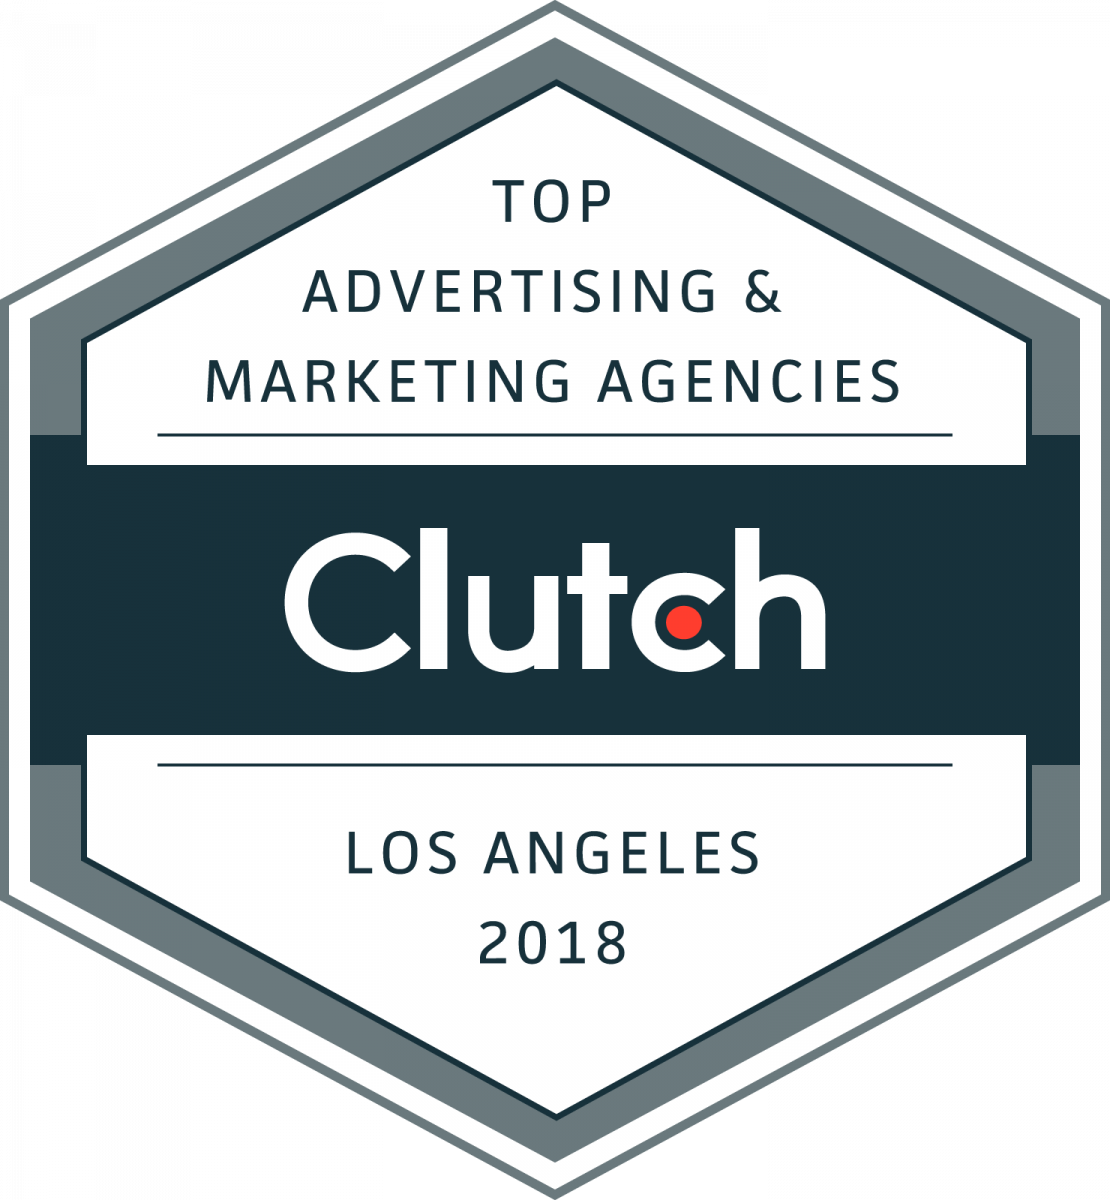 Top Advertising & Marketing Agencies Los Angeles Badge 2018